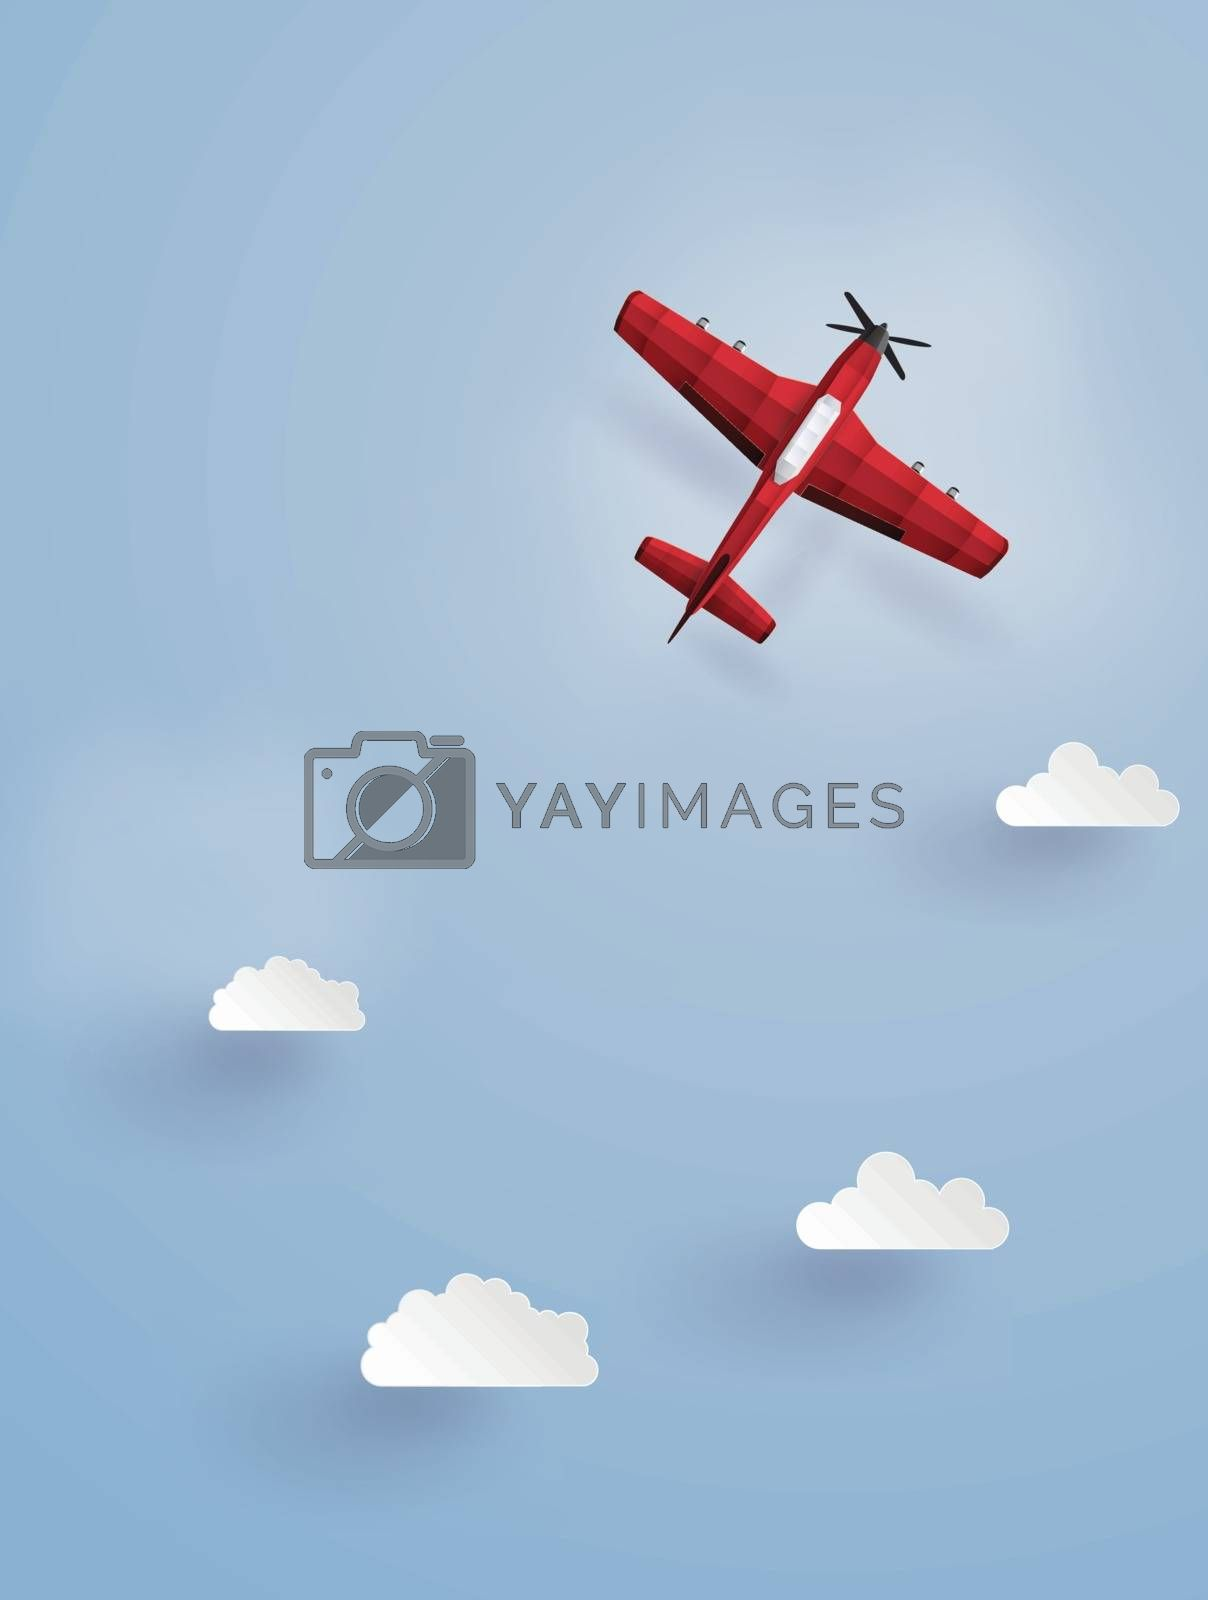 red plane flying  on the sky.The illustrations do the same paper art and craft style.